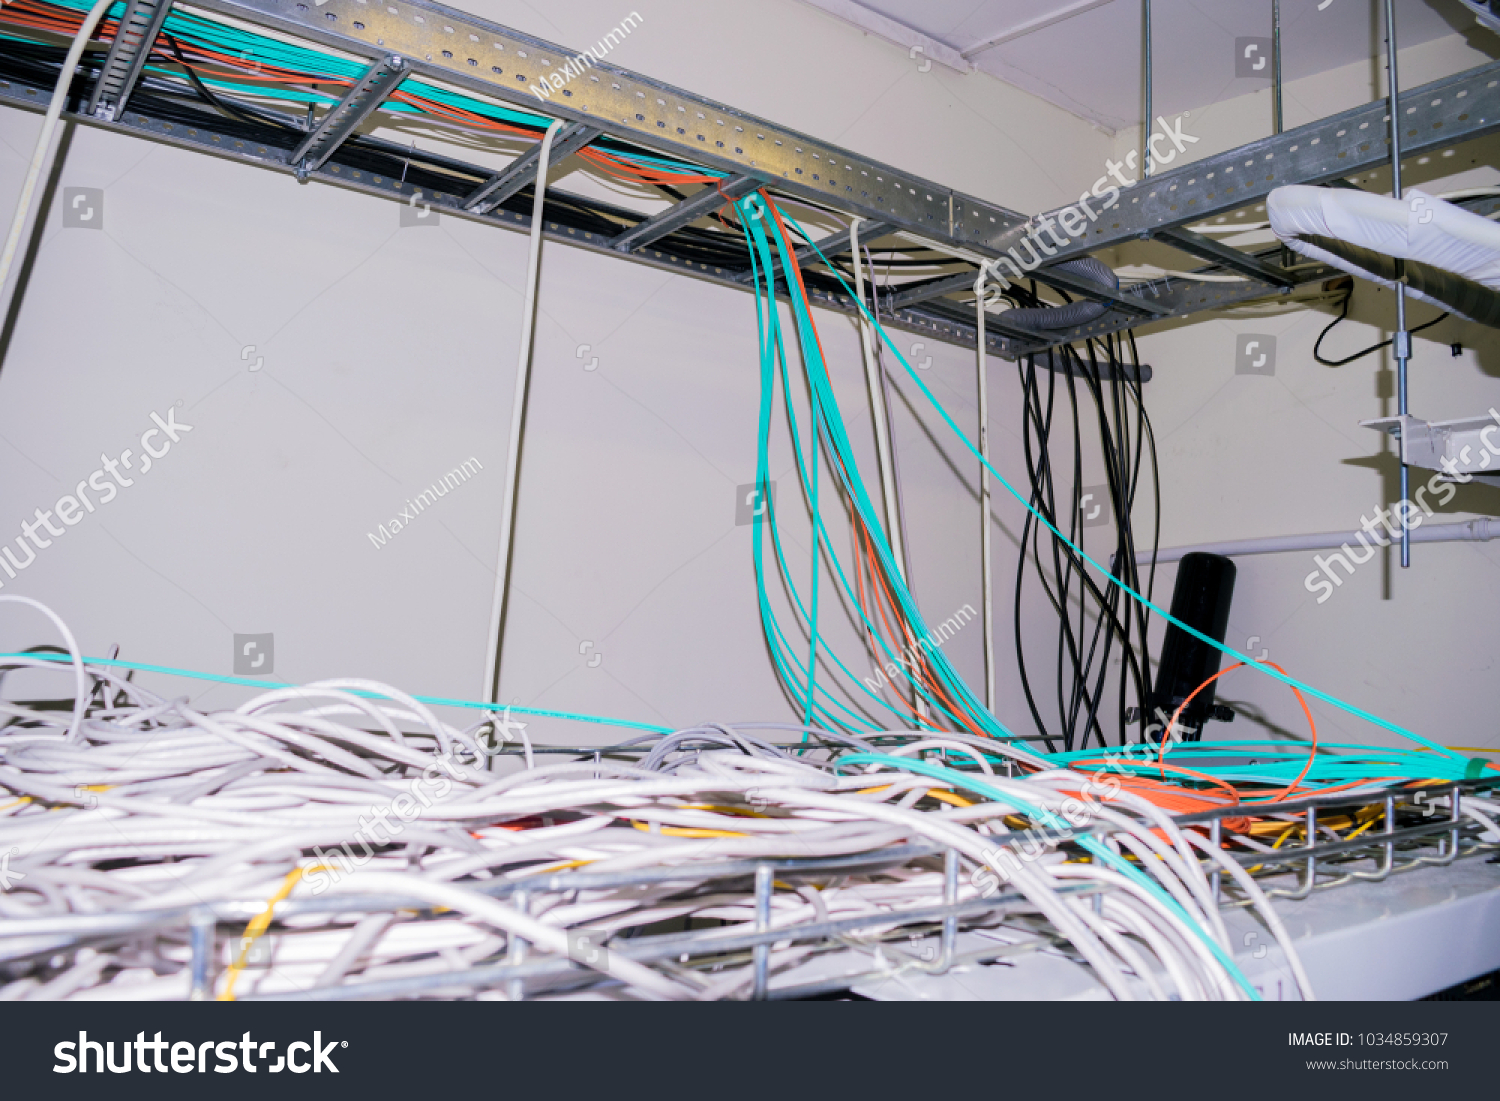 Messy Wires Tangled Among Themselves On Stock Photo (Edit Now ...